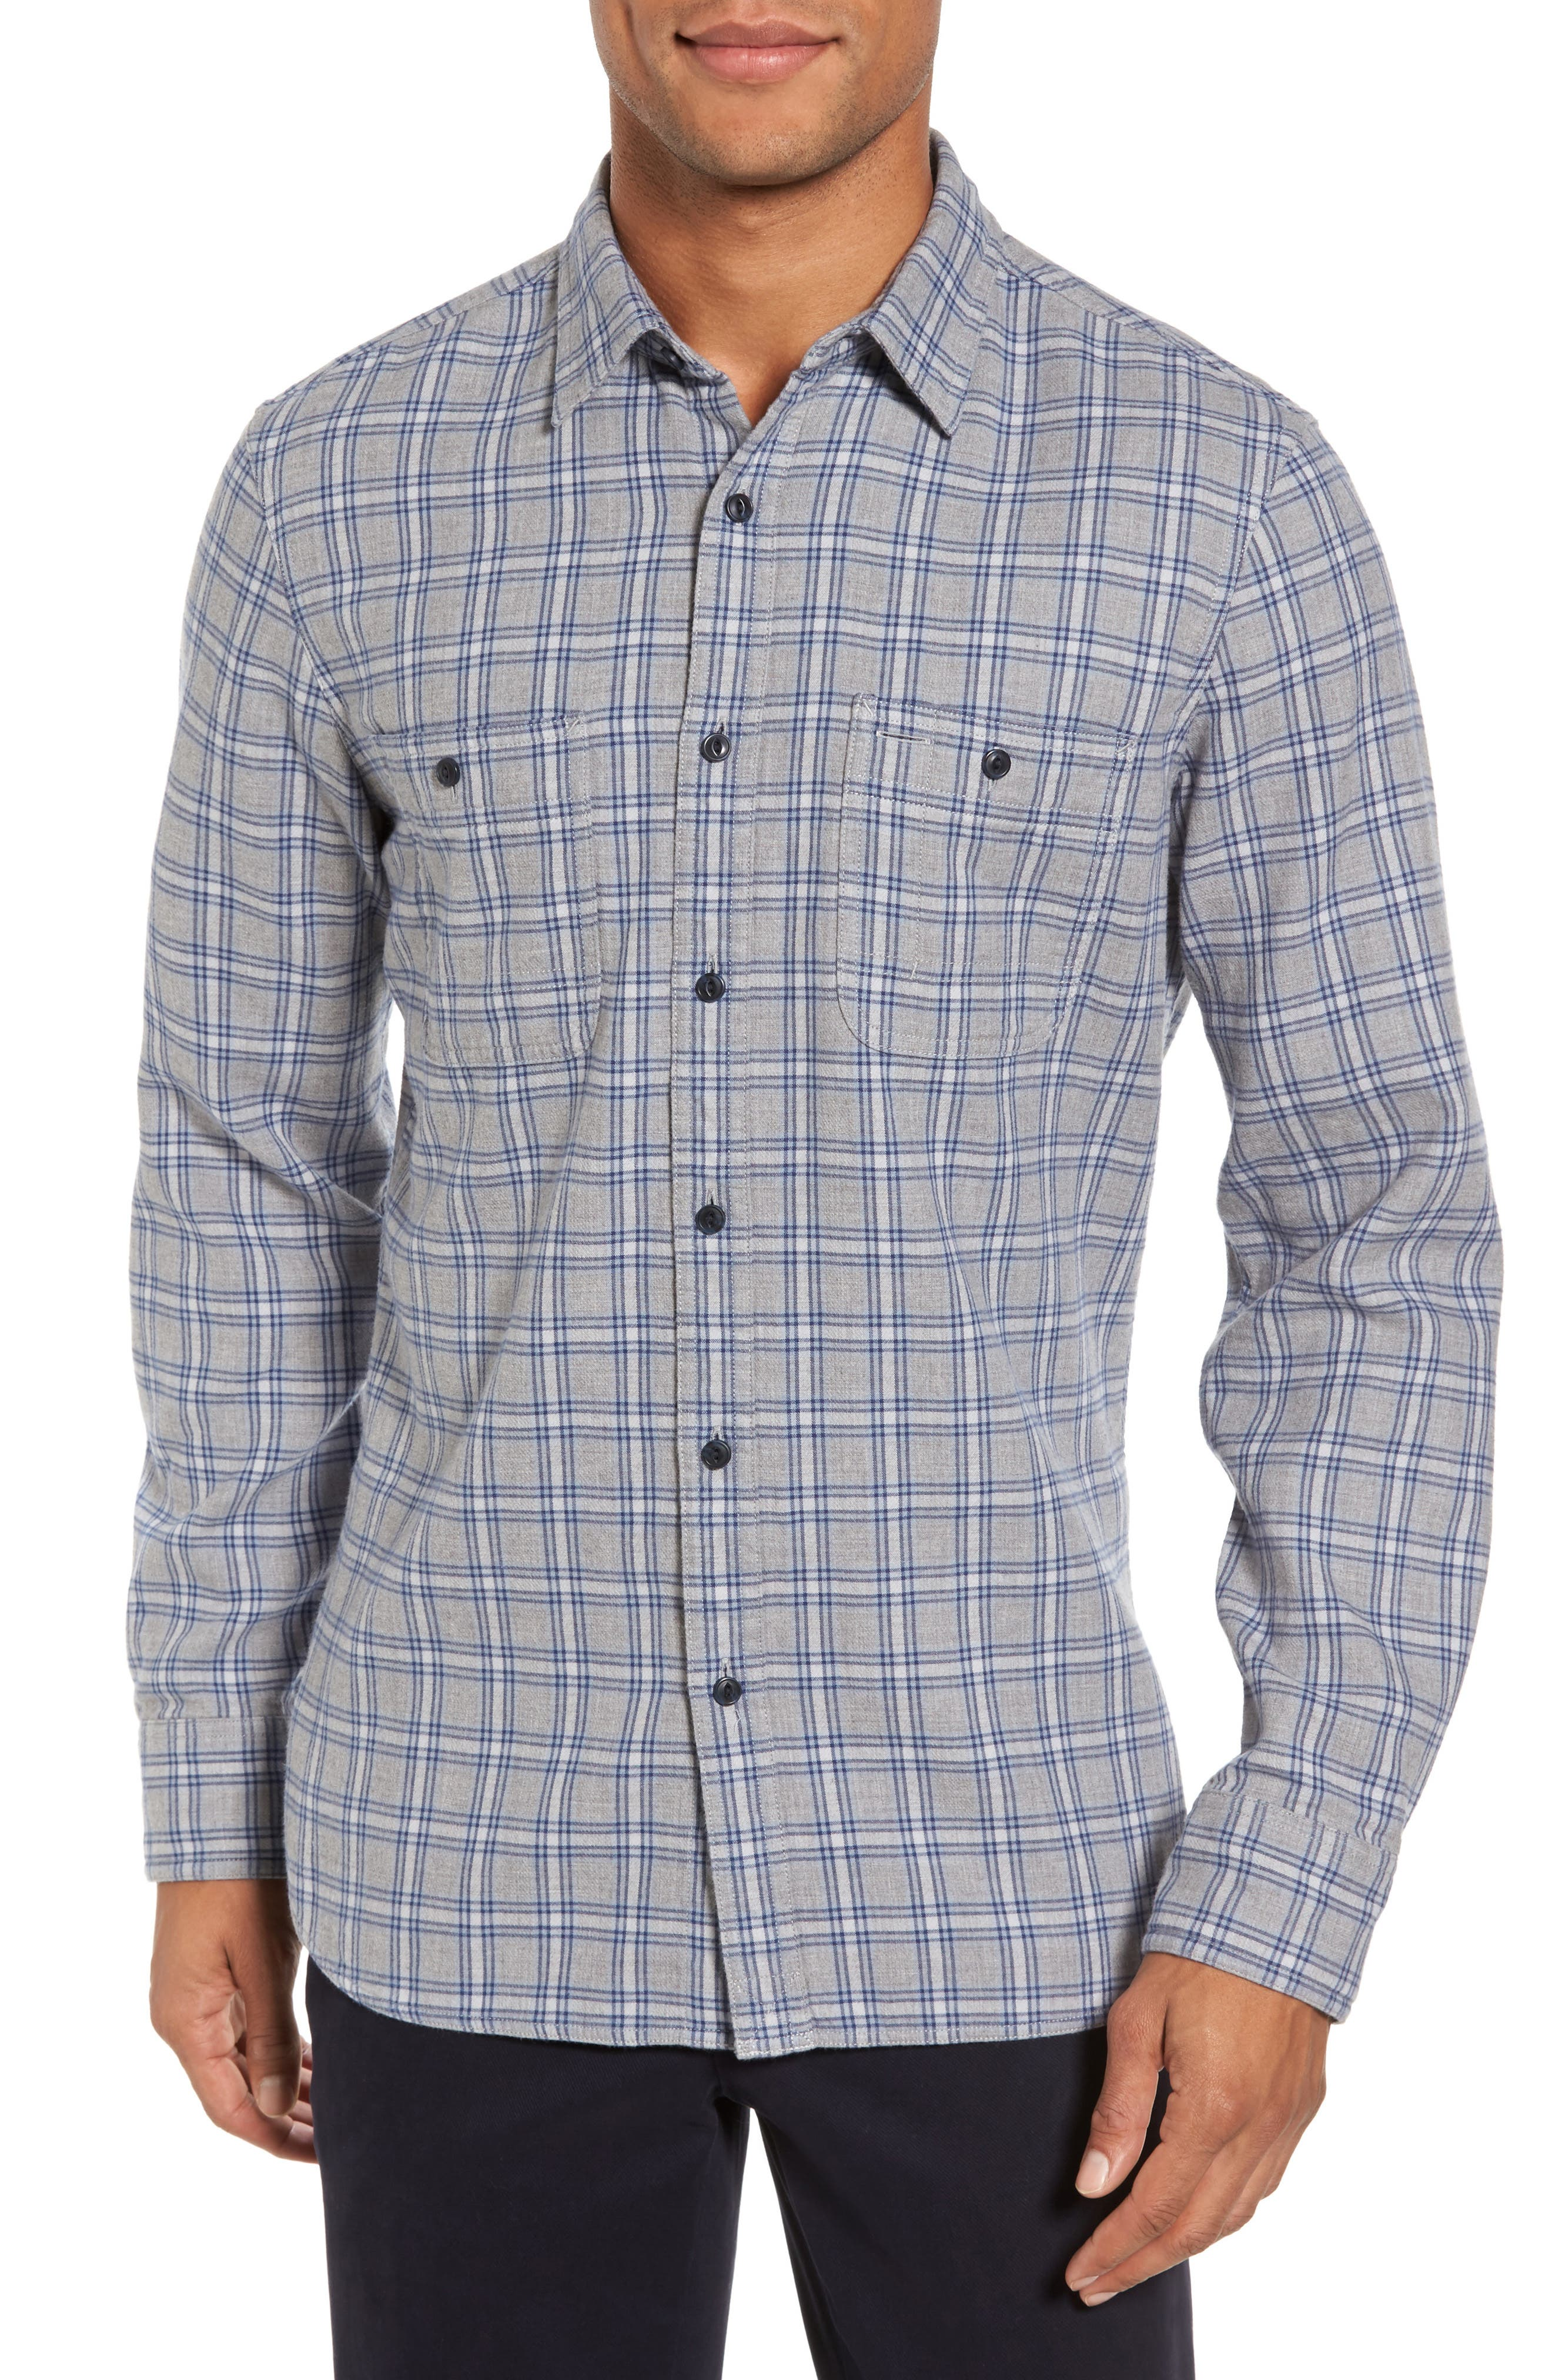 Main Image - Nordstrom Men's Shop Workwear Duofold Check Sport Shirt